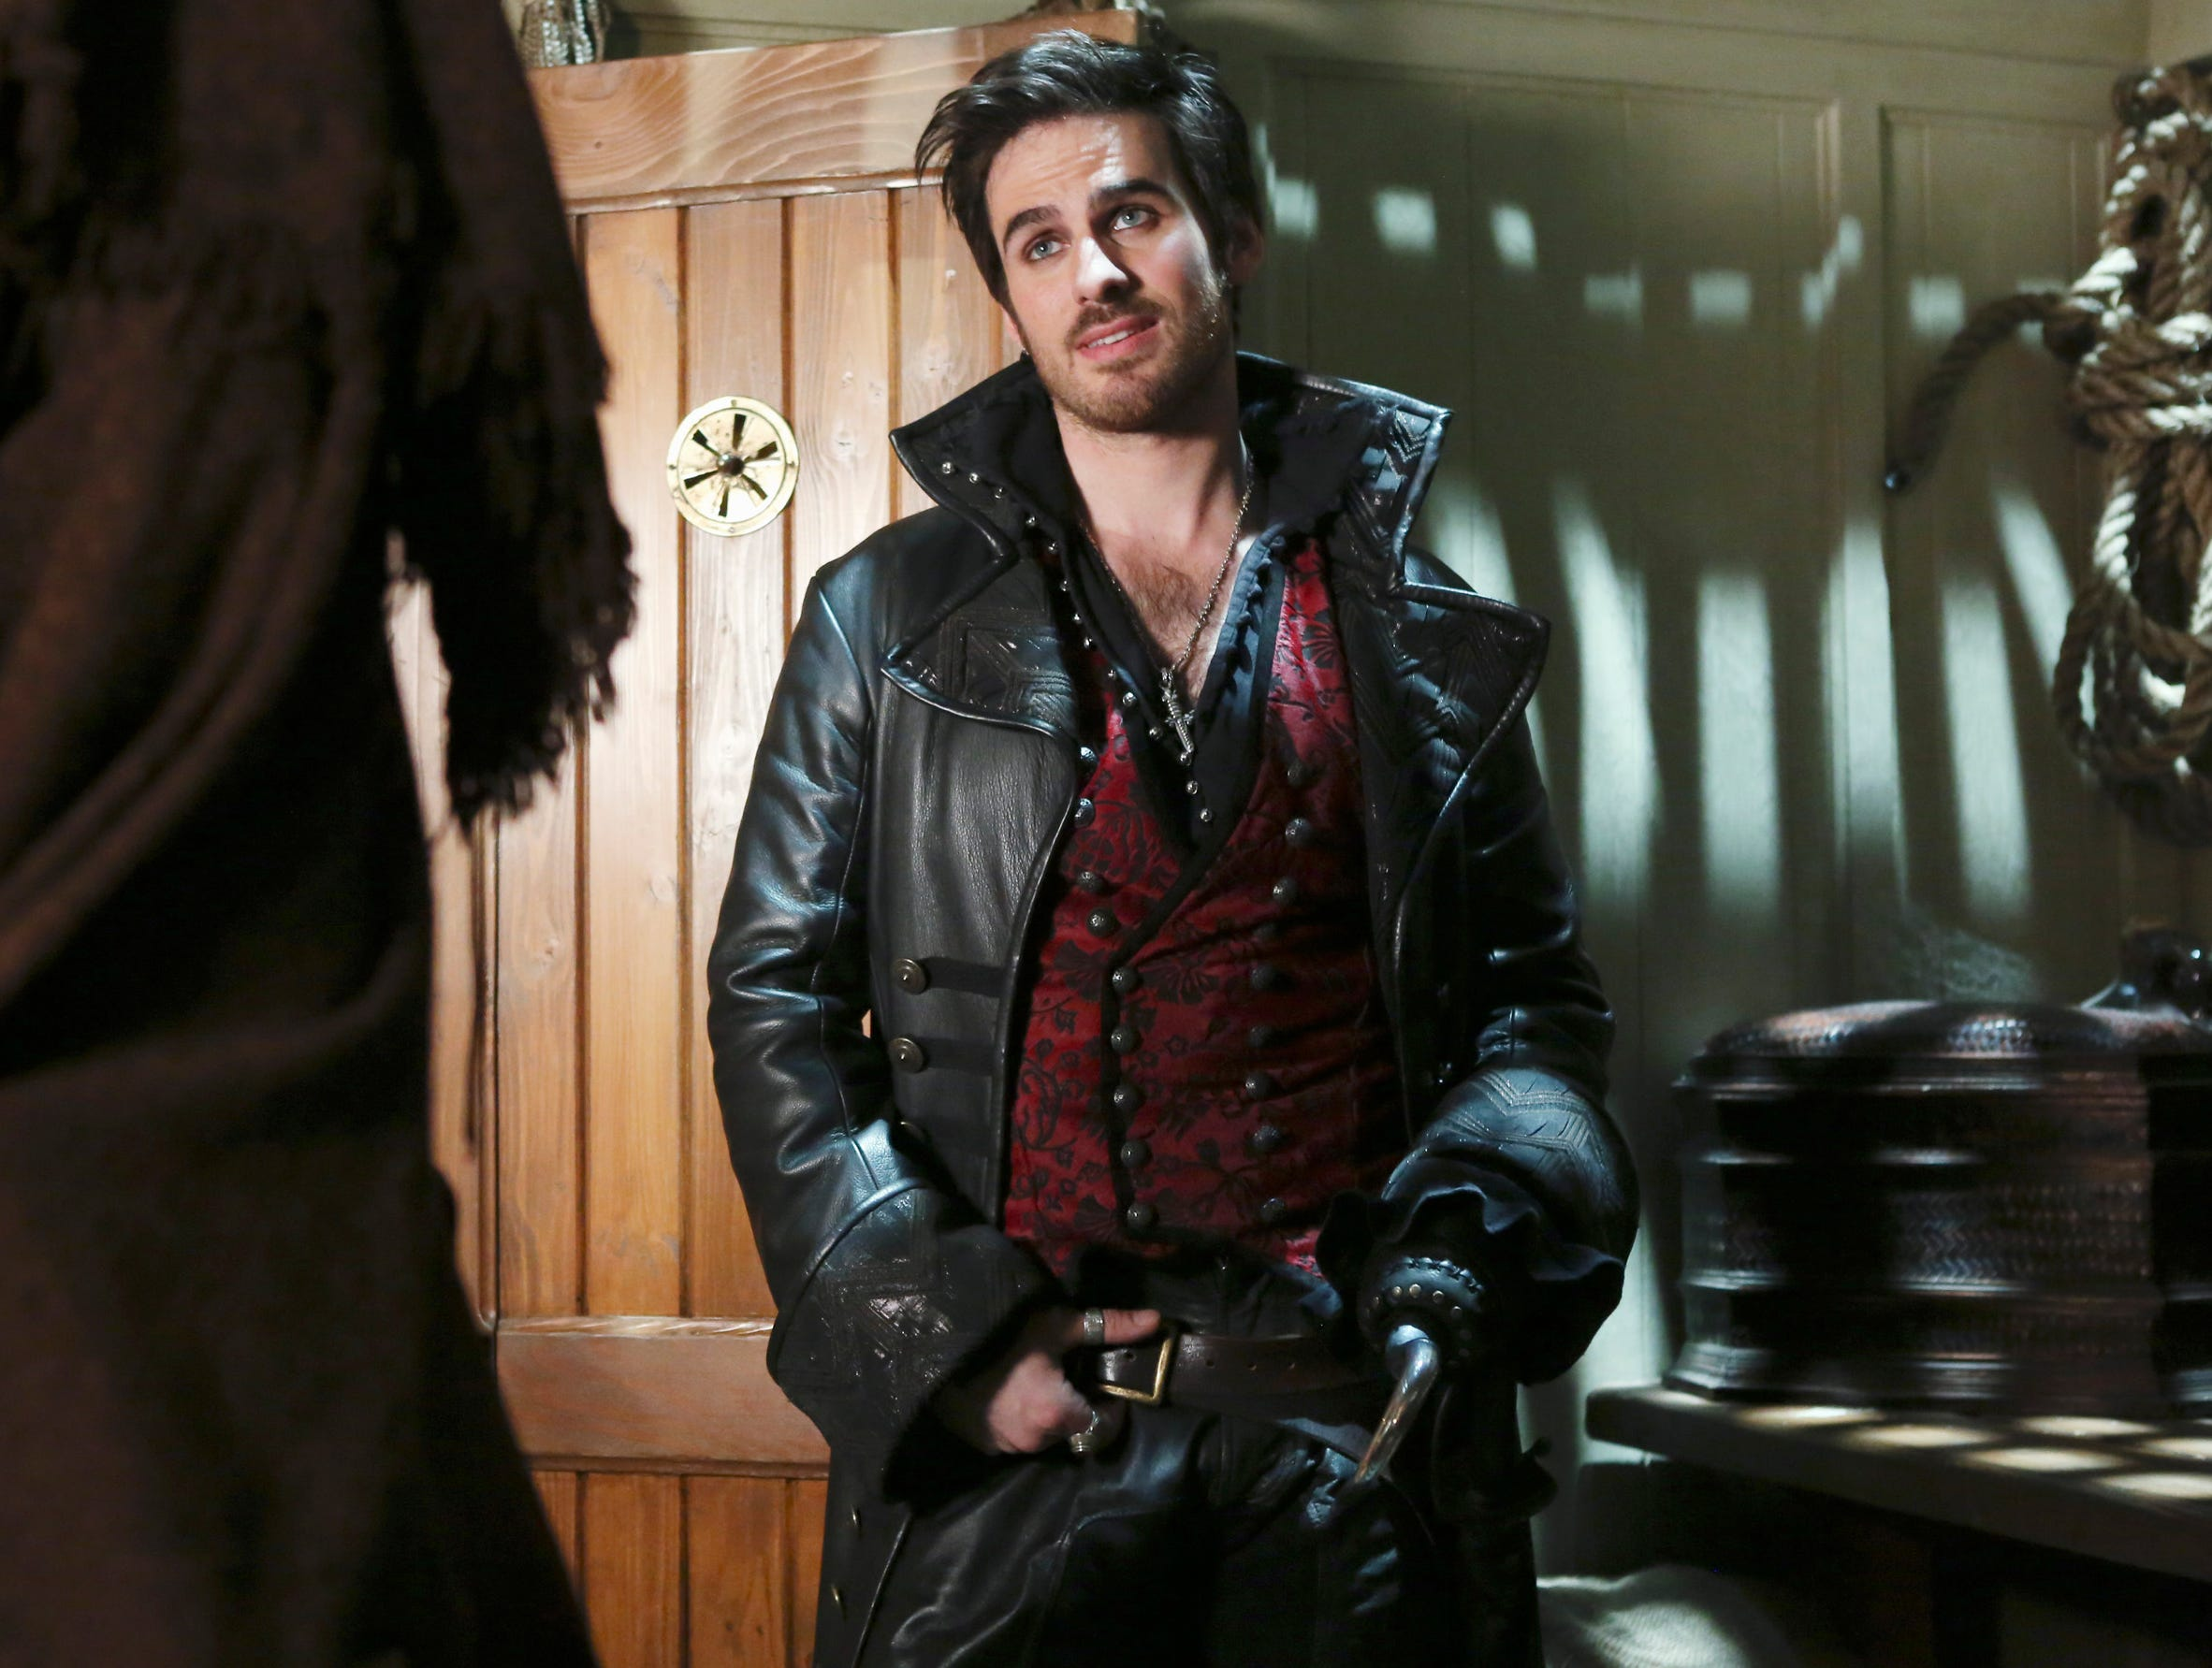 captain hook once upon a time actor Colin o'donoghue dating history, 2018 colin o'donoghue is a 37 year old irish actor born colin o'donoghue on 26th once upon a time: 2011: captain hook.